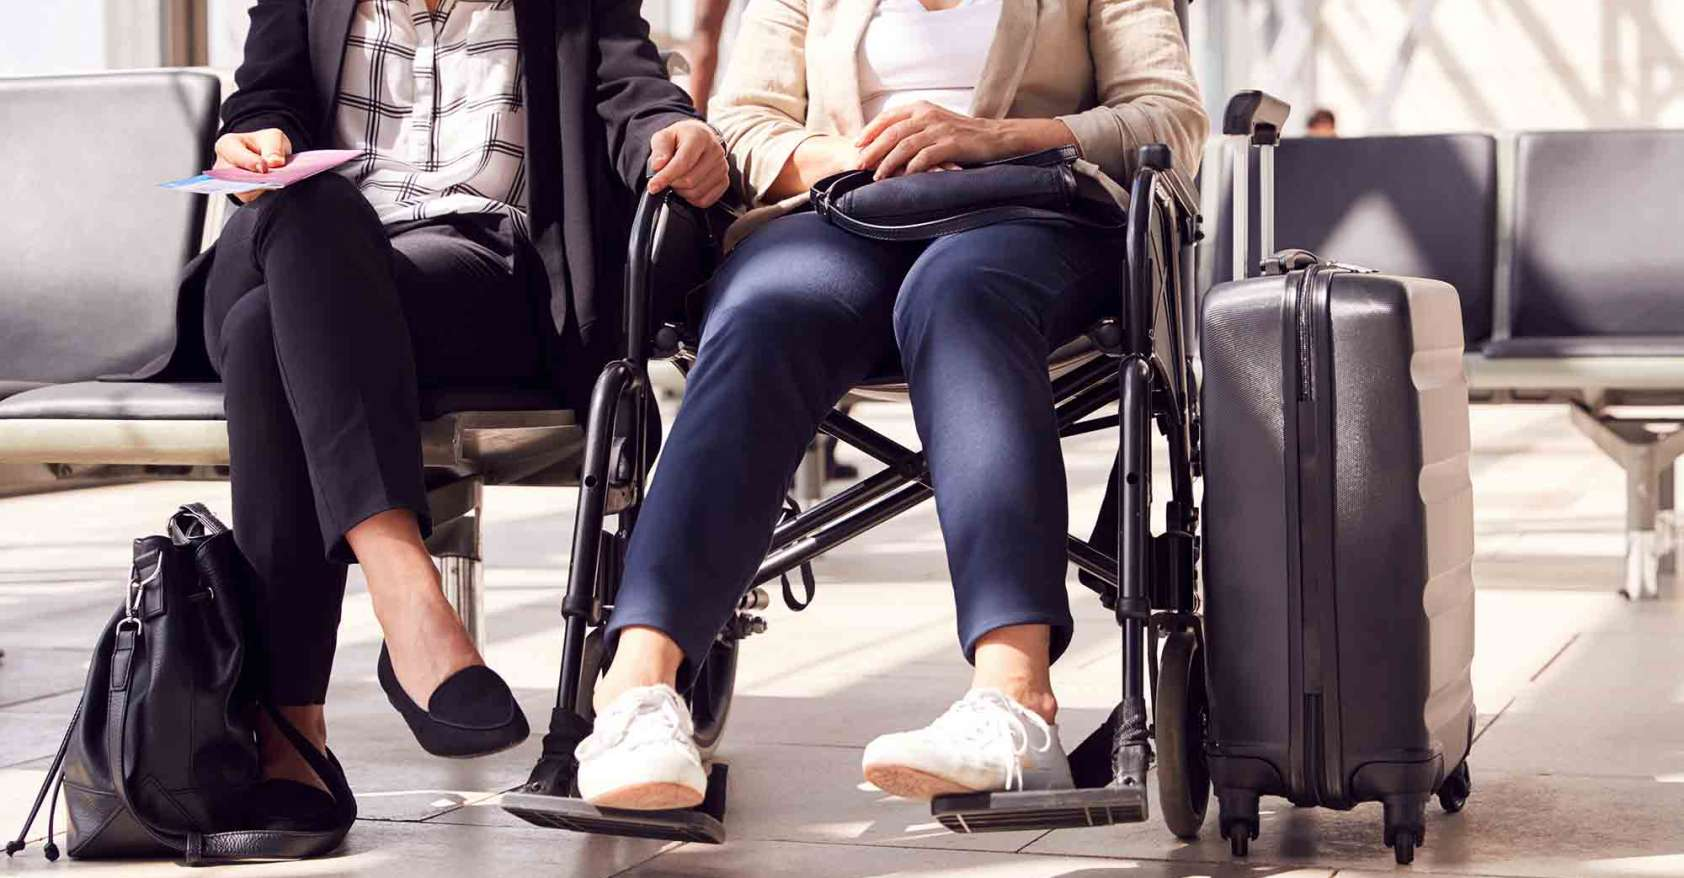 two women sitting in airport one in a wheelchair personal care assistant